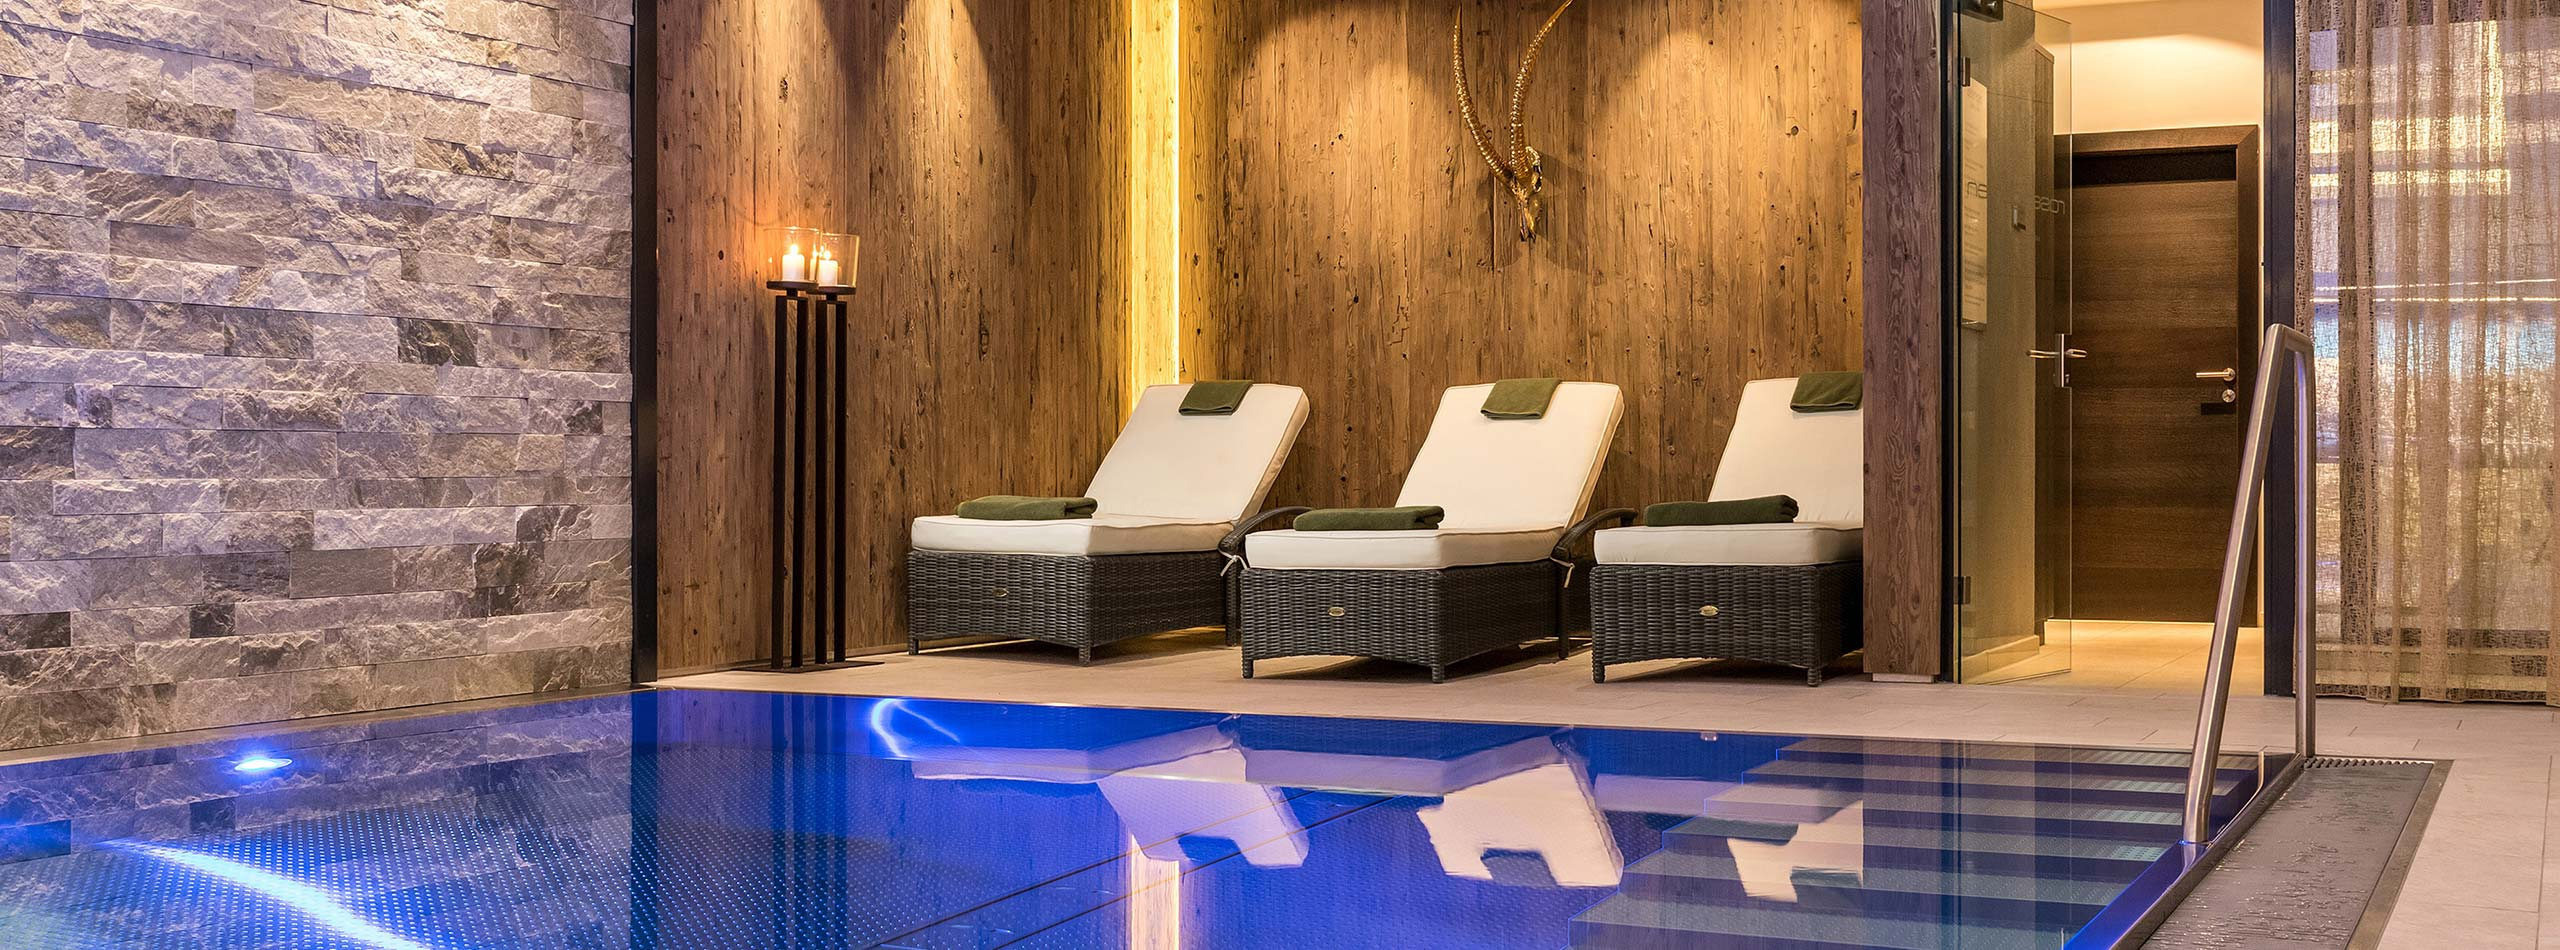 Beauty & wellbeing spa hotel in austria Hotel Restaurant Spa Rosengarten